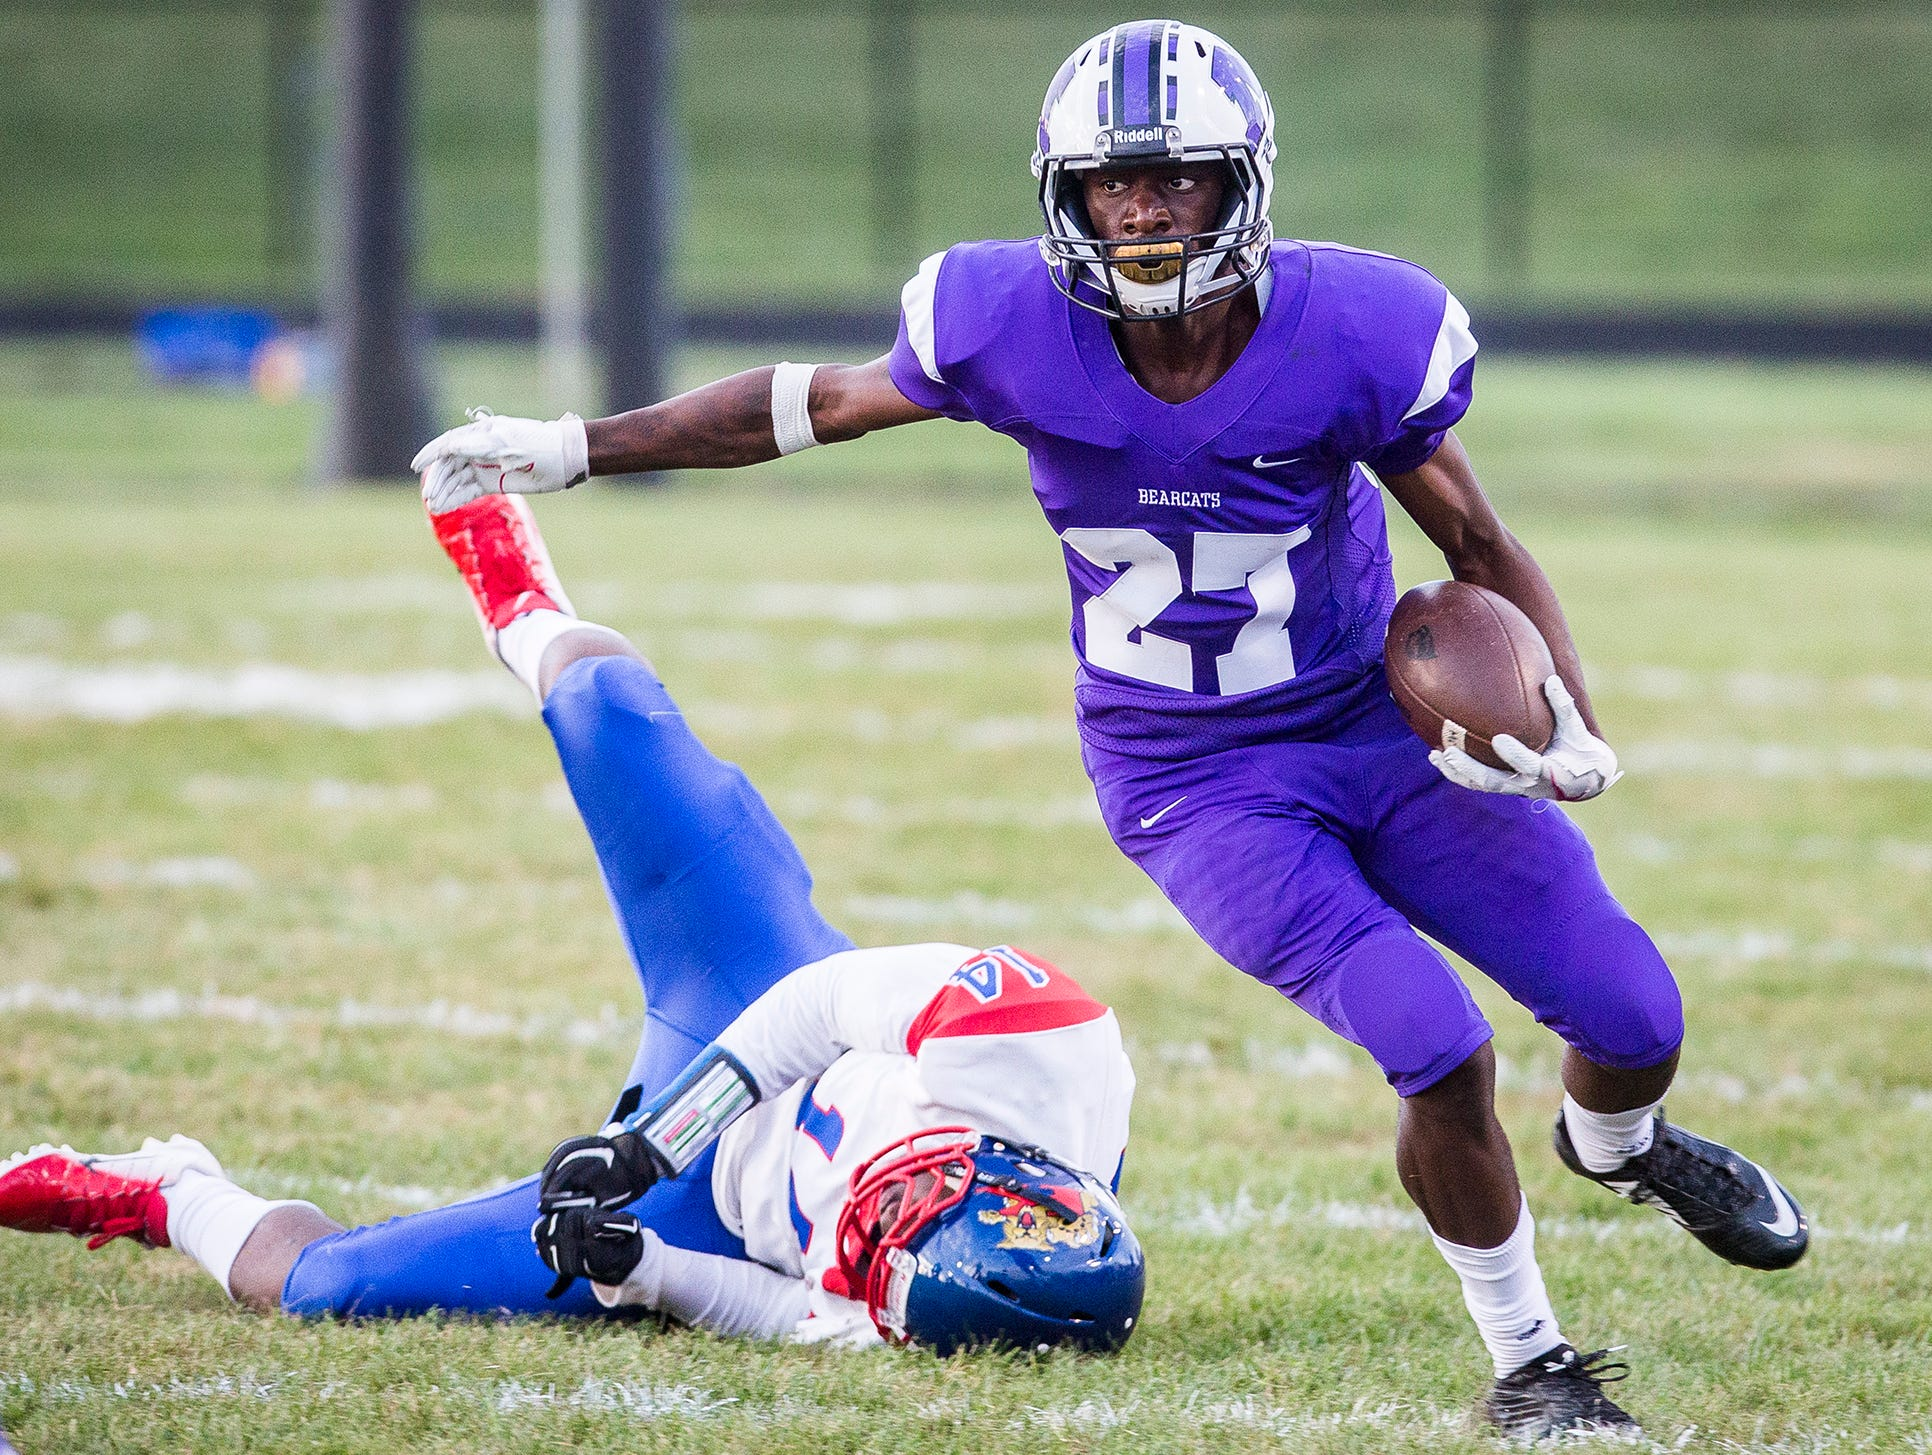 Central's Damarius Pegues slips past Kokomo's defense during their game at Central Friday, Sept. 21, 2018.